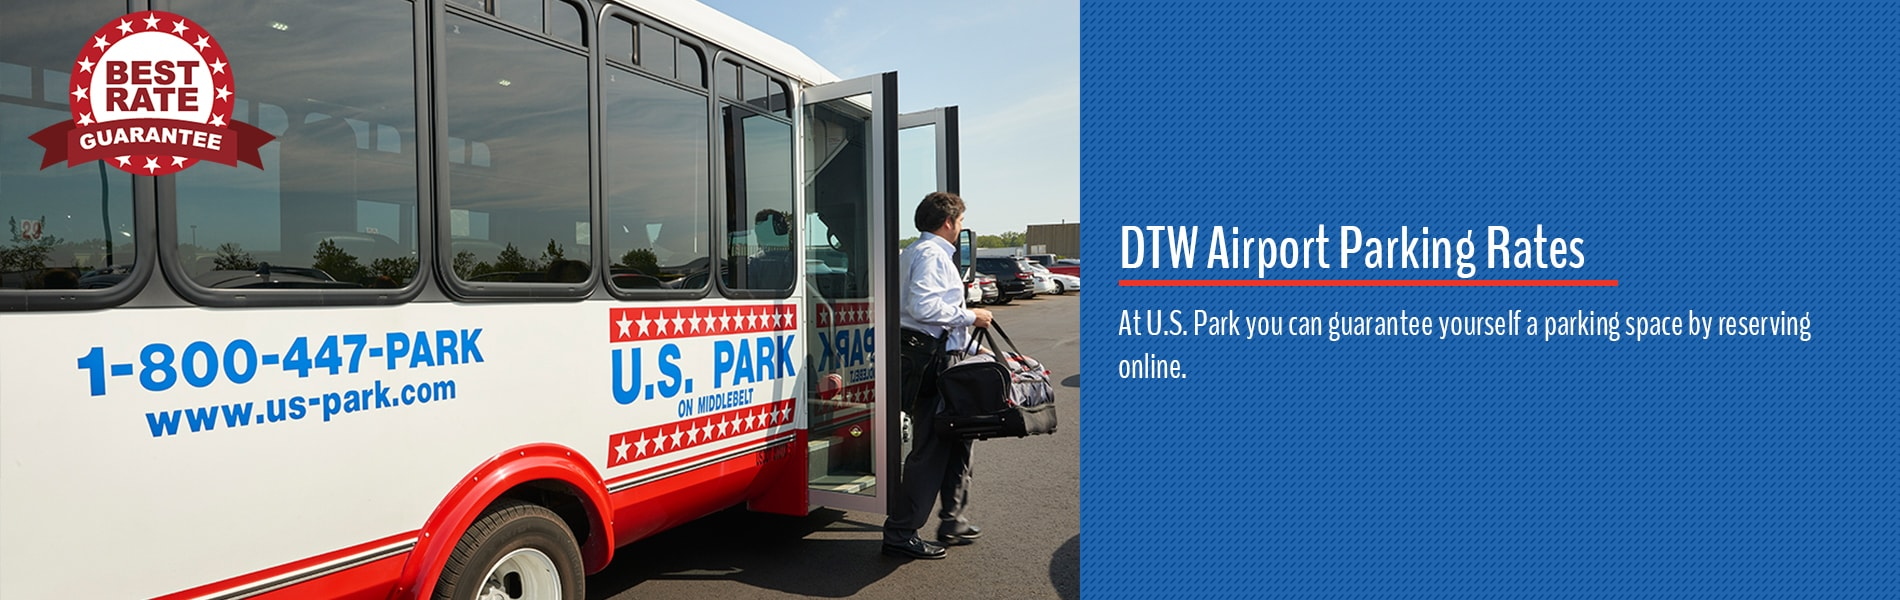 DTW Airport Parking Rates